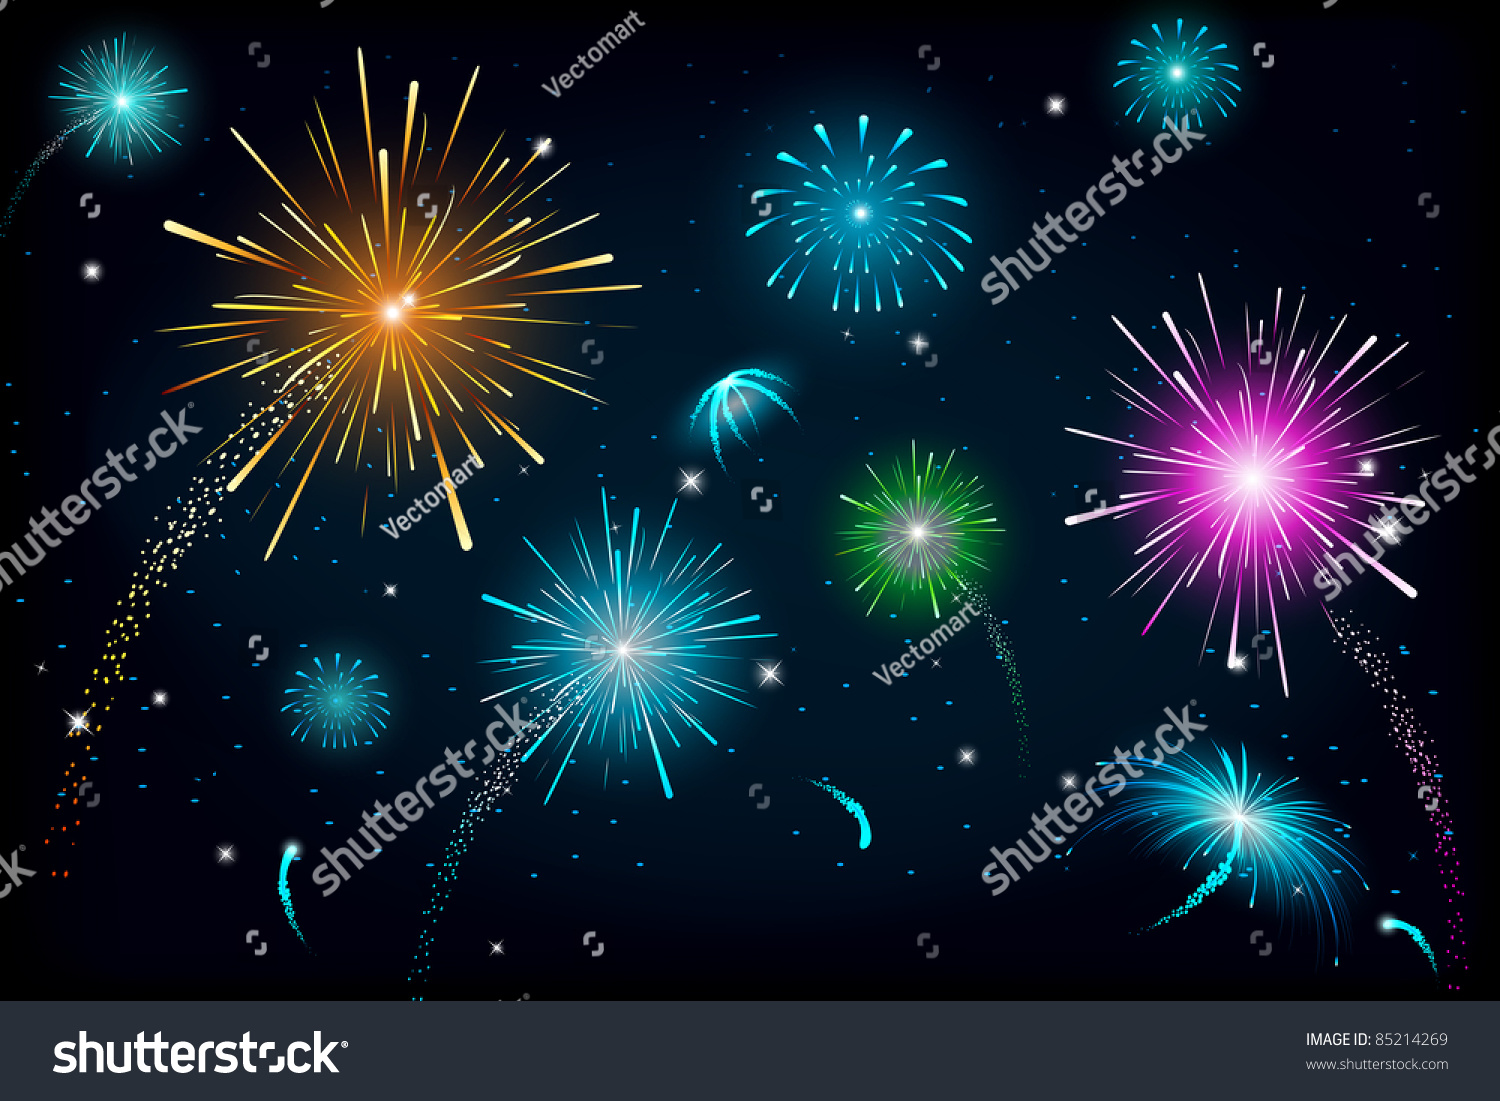 Wallpaper Salute Sky Holiday Colorful 3376x4220: Illustration Colorful Fire Cracker Blast Sky Stock Vector